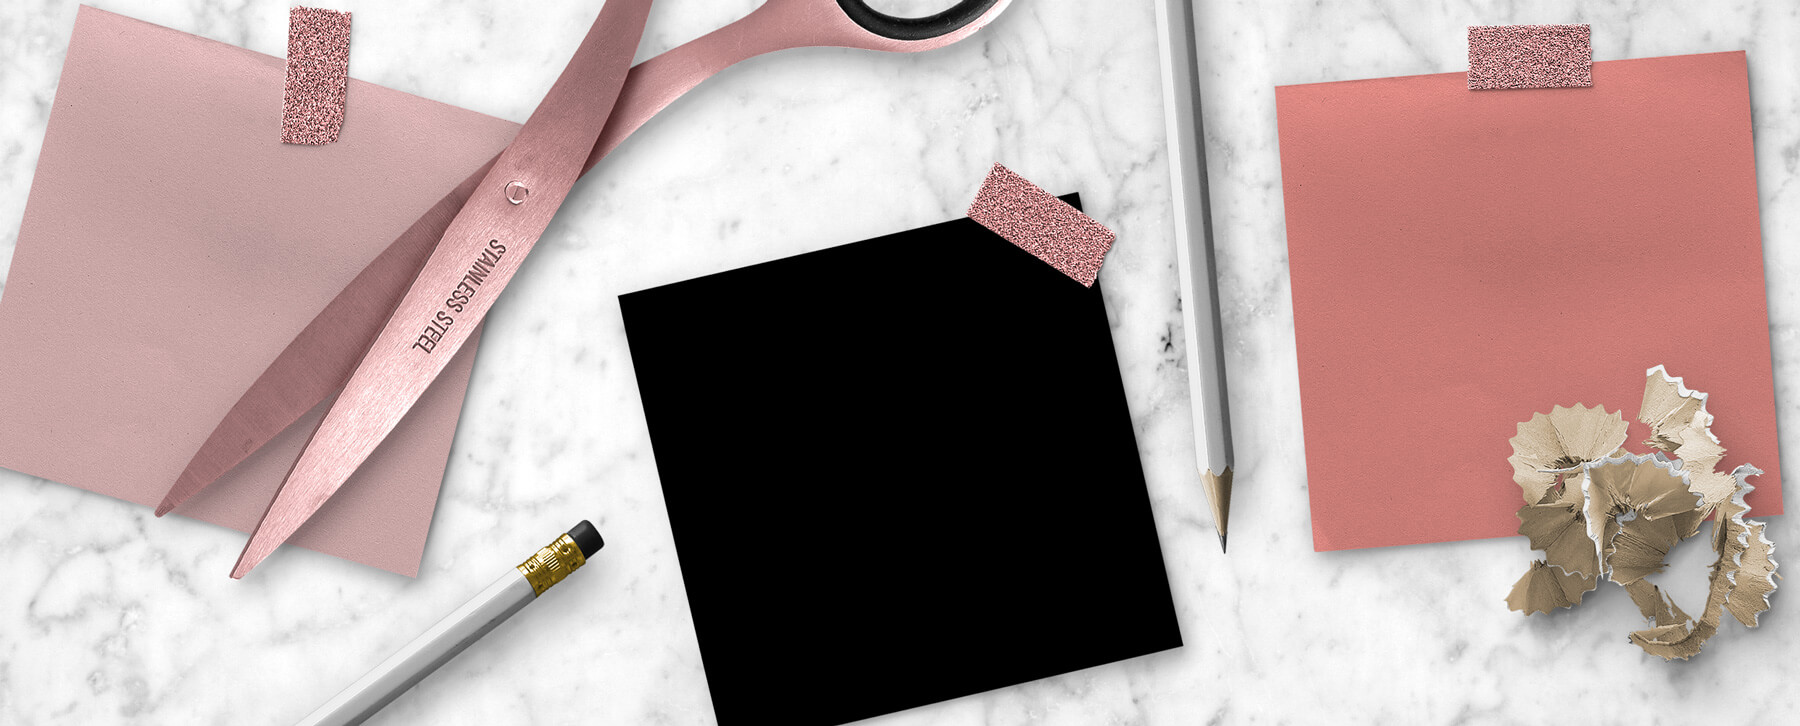 Blush Pink, Rose Gold, Black moodboard